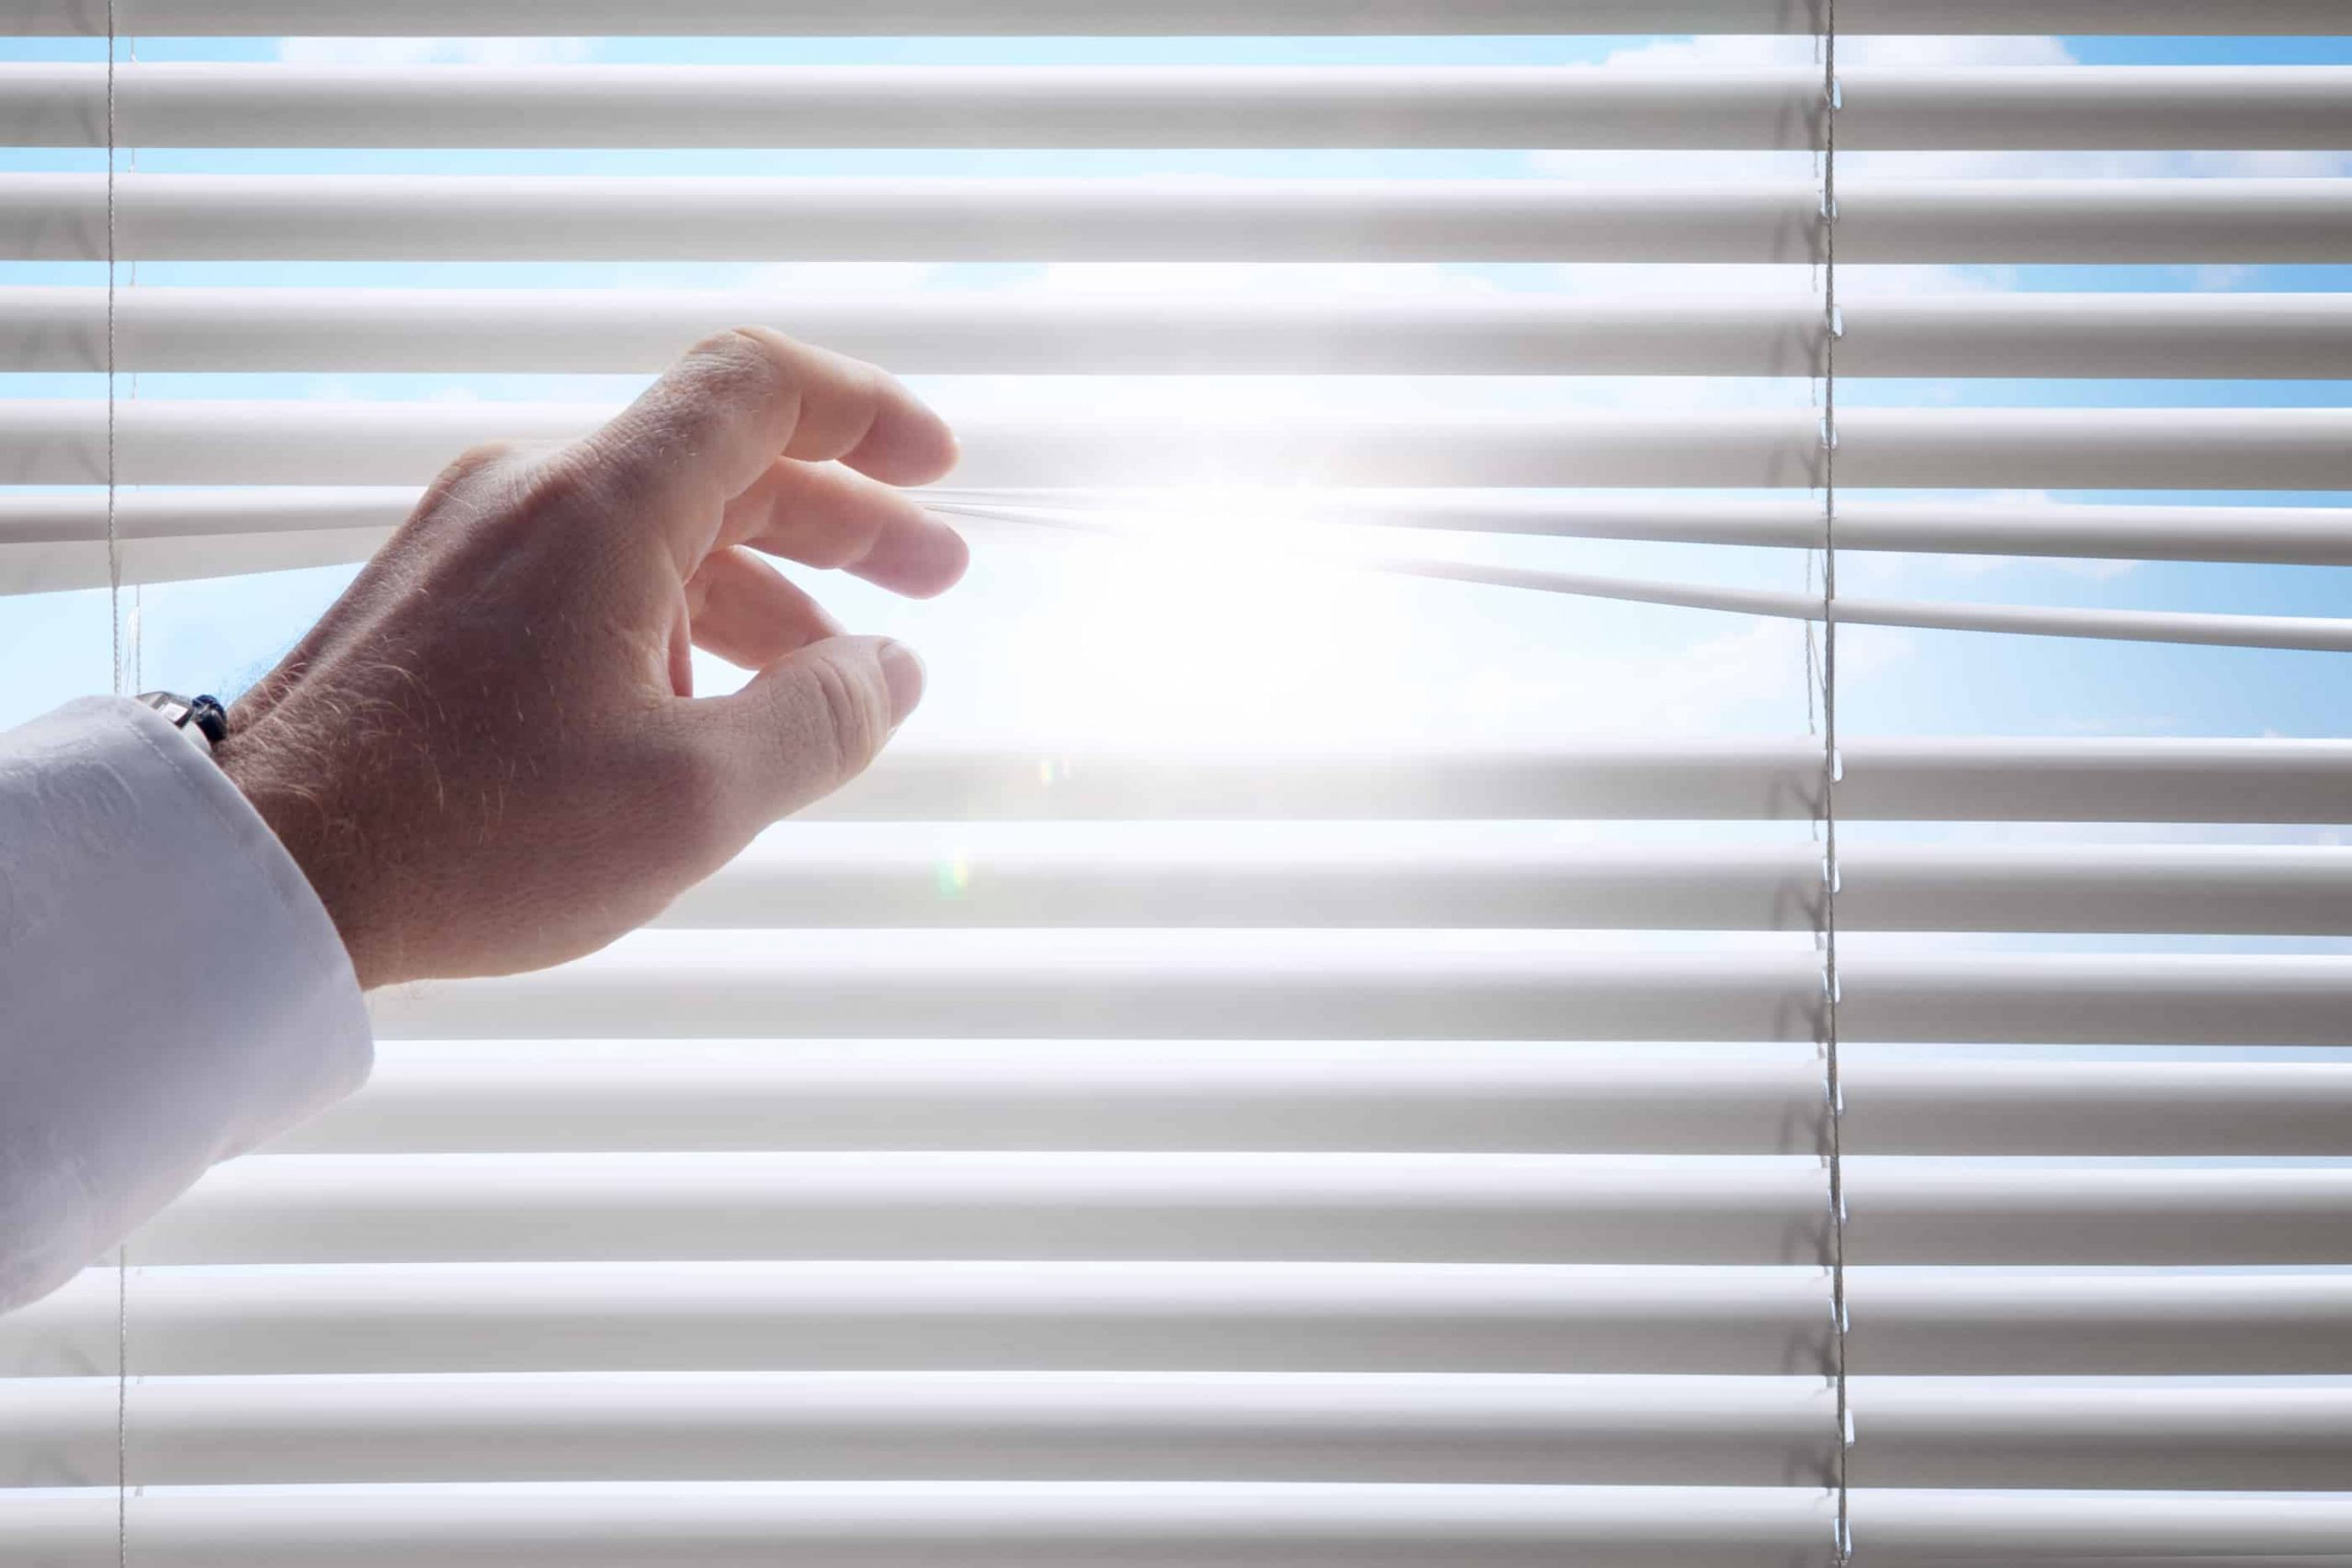 A man opening up some blinds with the sun shining through